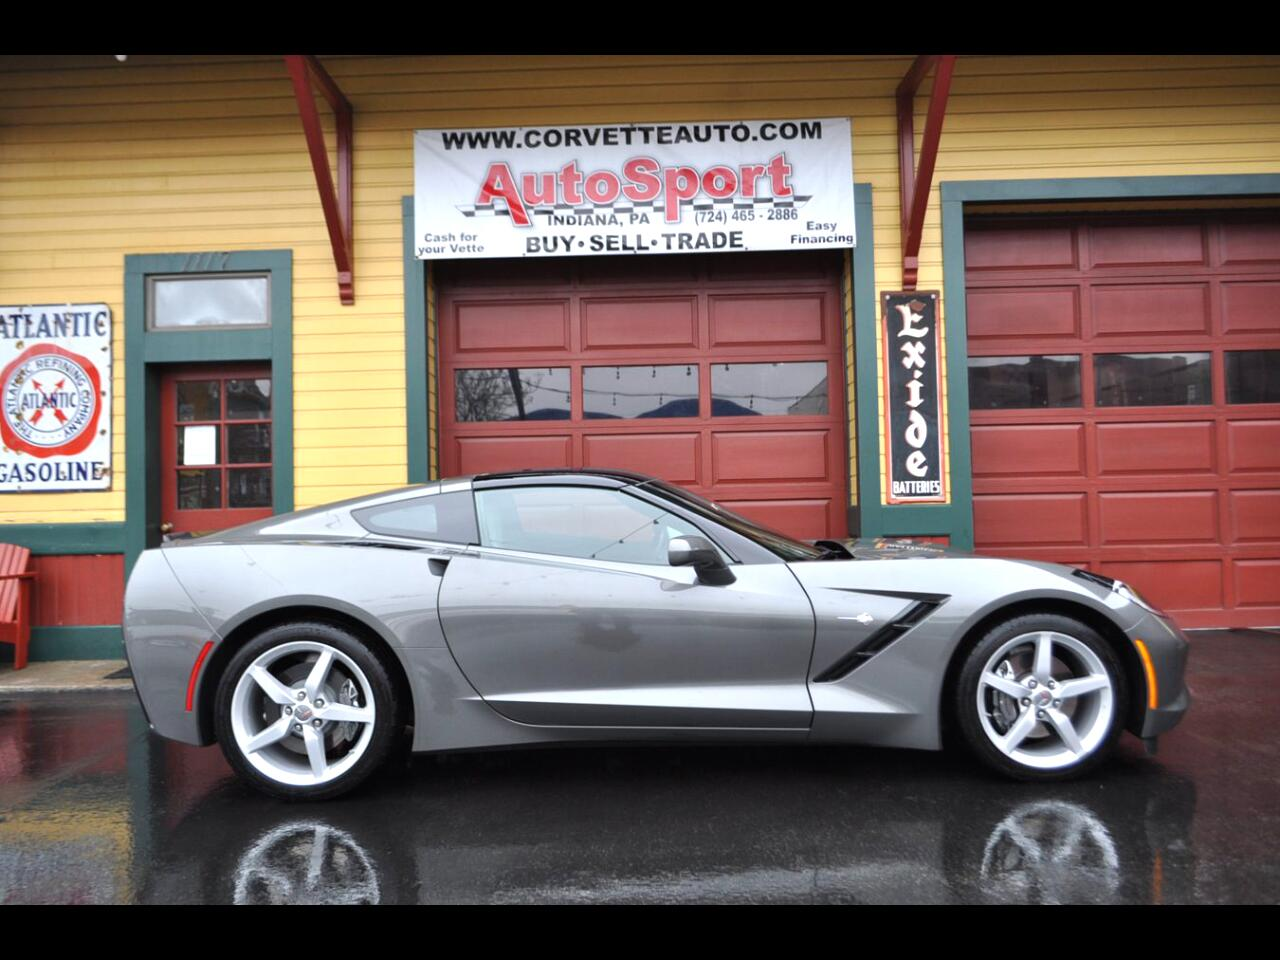 2015 Chevrolet Corvette 1 Owner Shark Gray 10k Miles Clean Car Fax!!